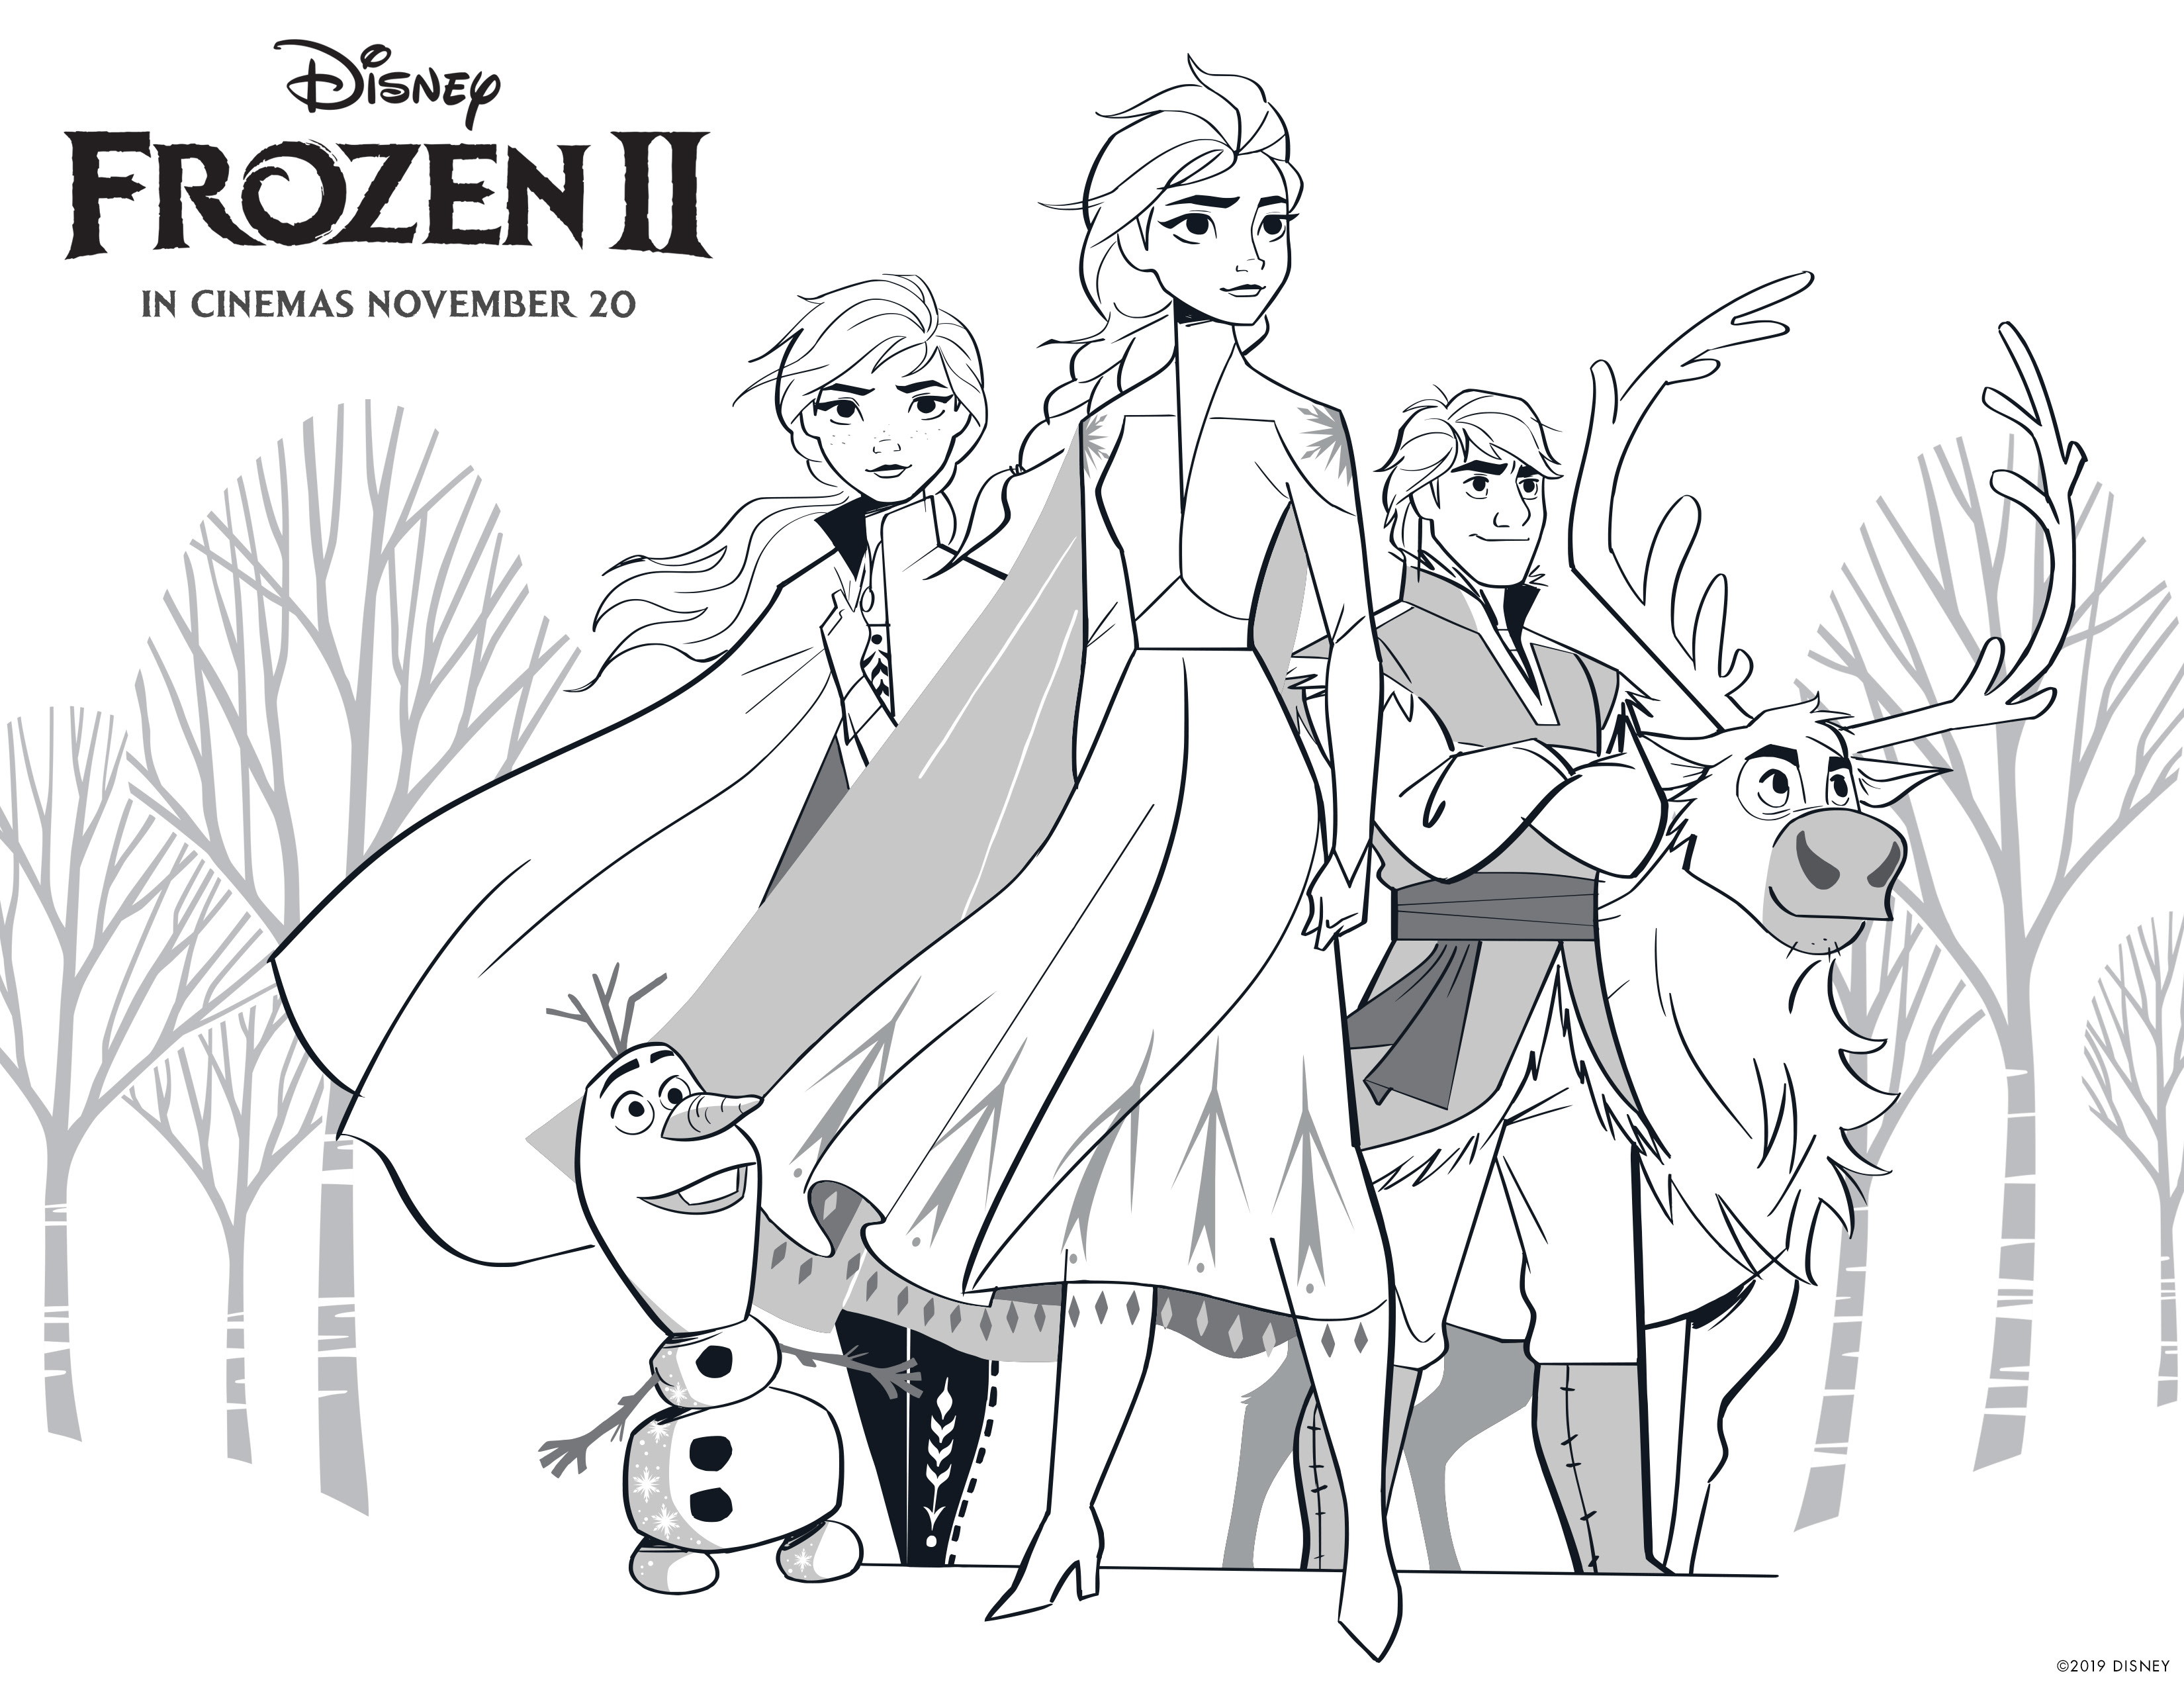 Frozen 2 Free Coloring Pages With Elsa Anna Olaf Kristoff Bruni And Nokk Youloveit Com